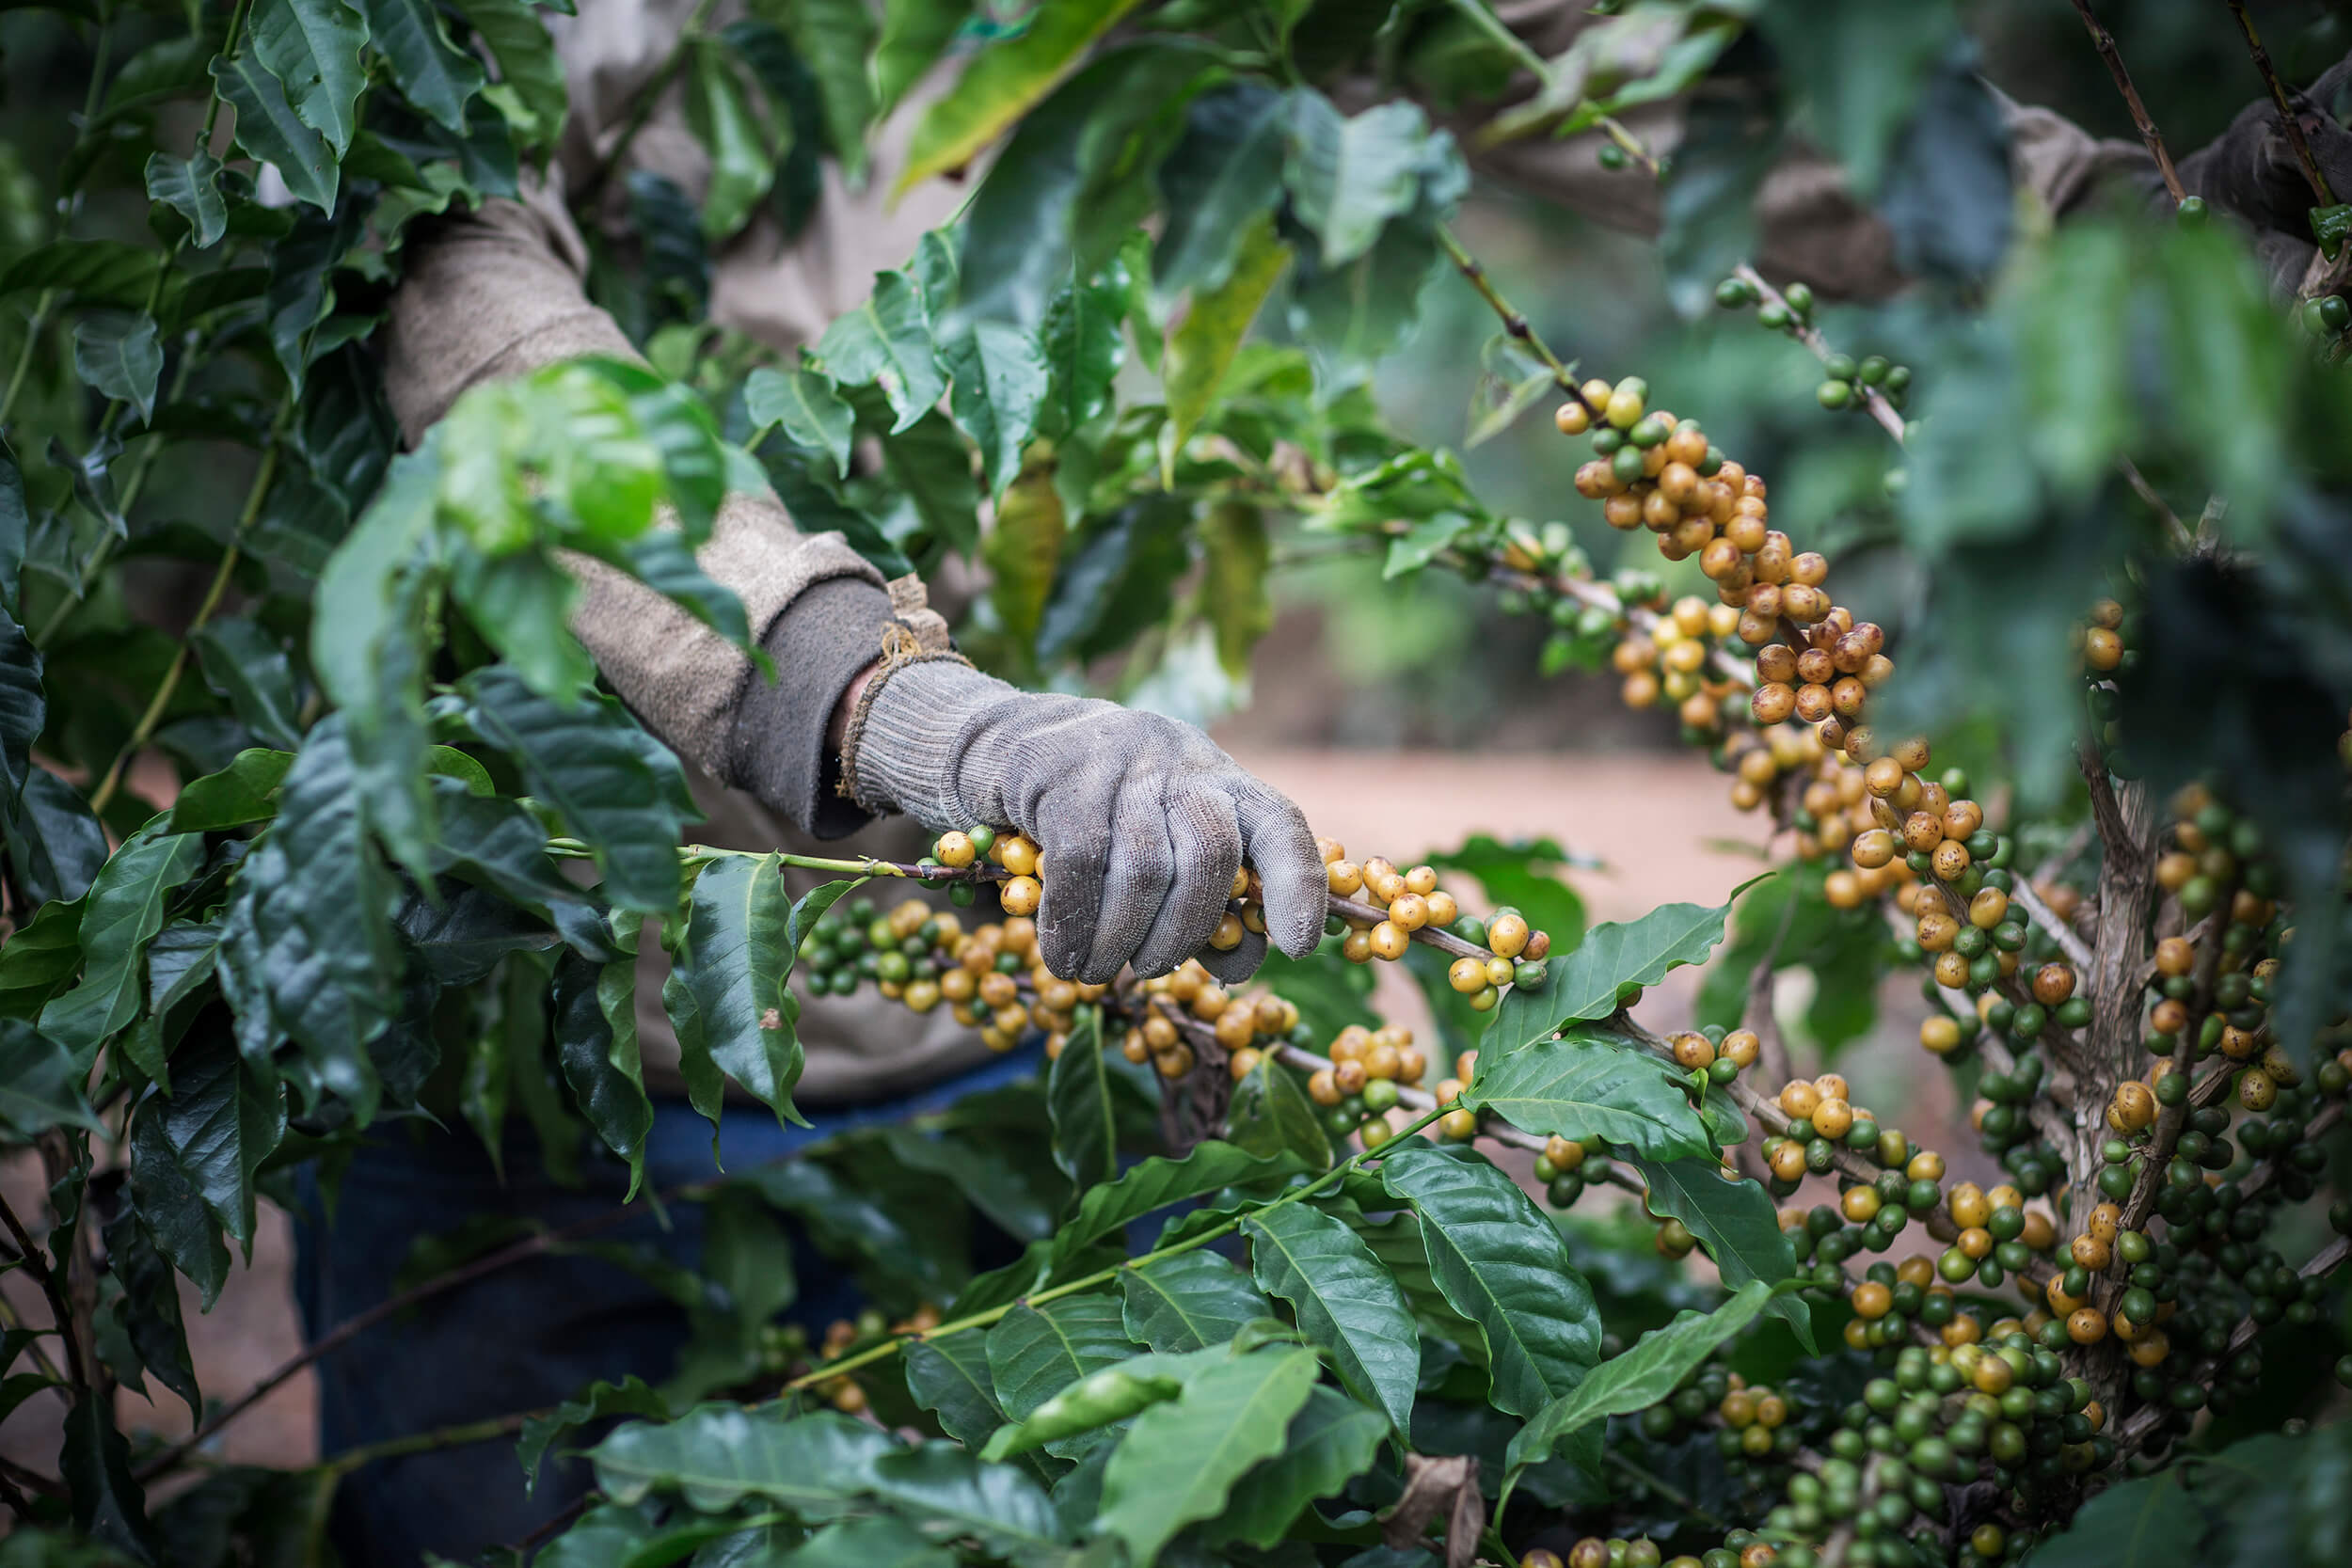 Coffee harvested in Brazil with the milking method, where you stripping all coffee, matured or not, from the branch.